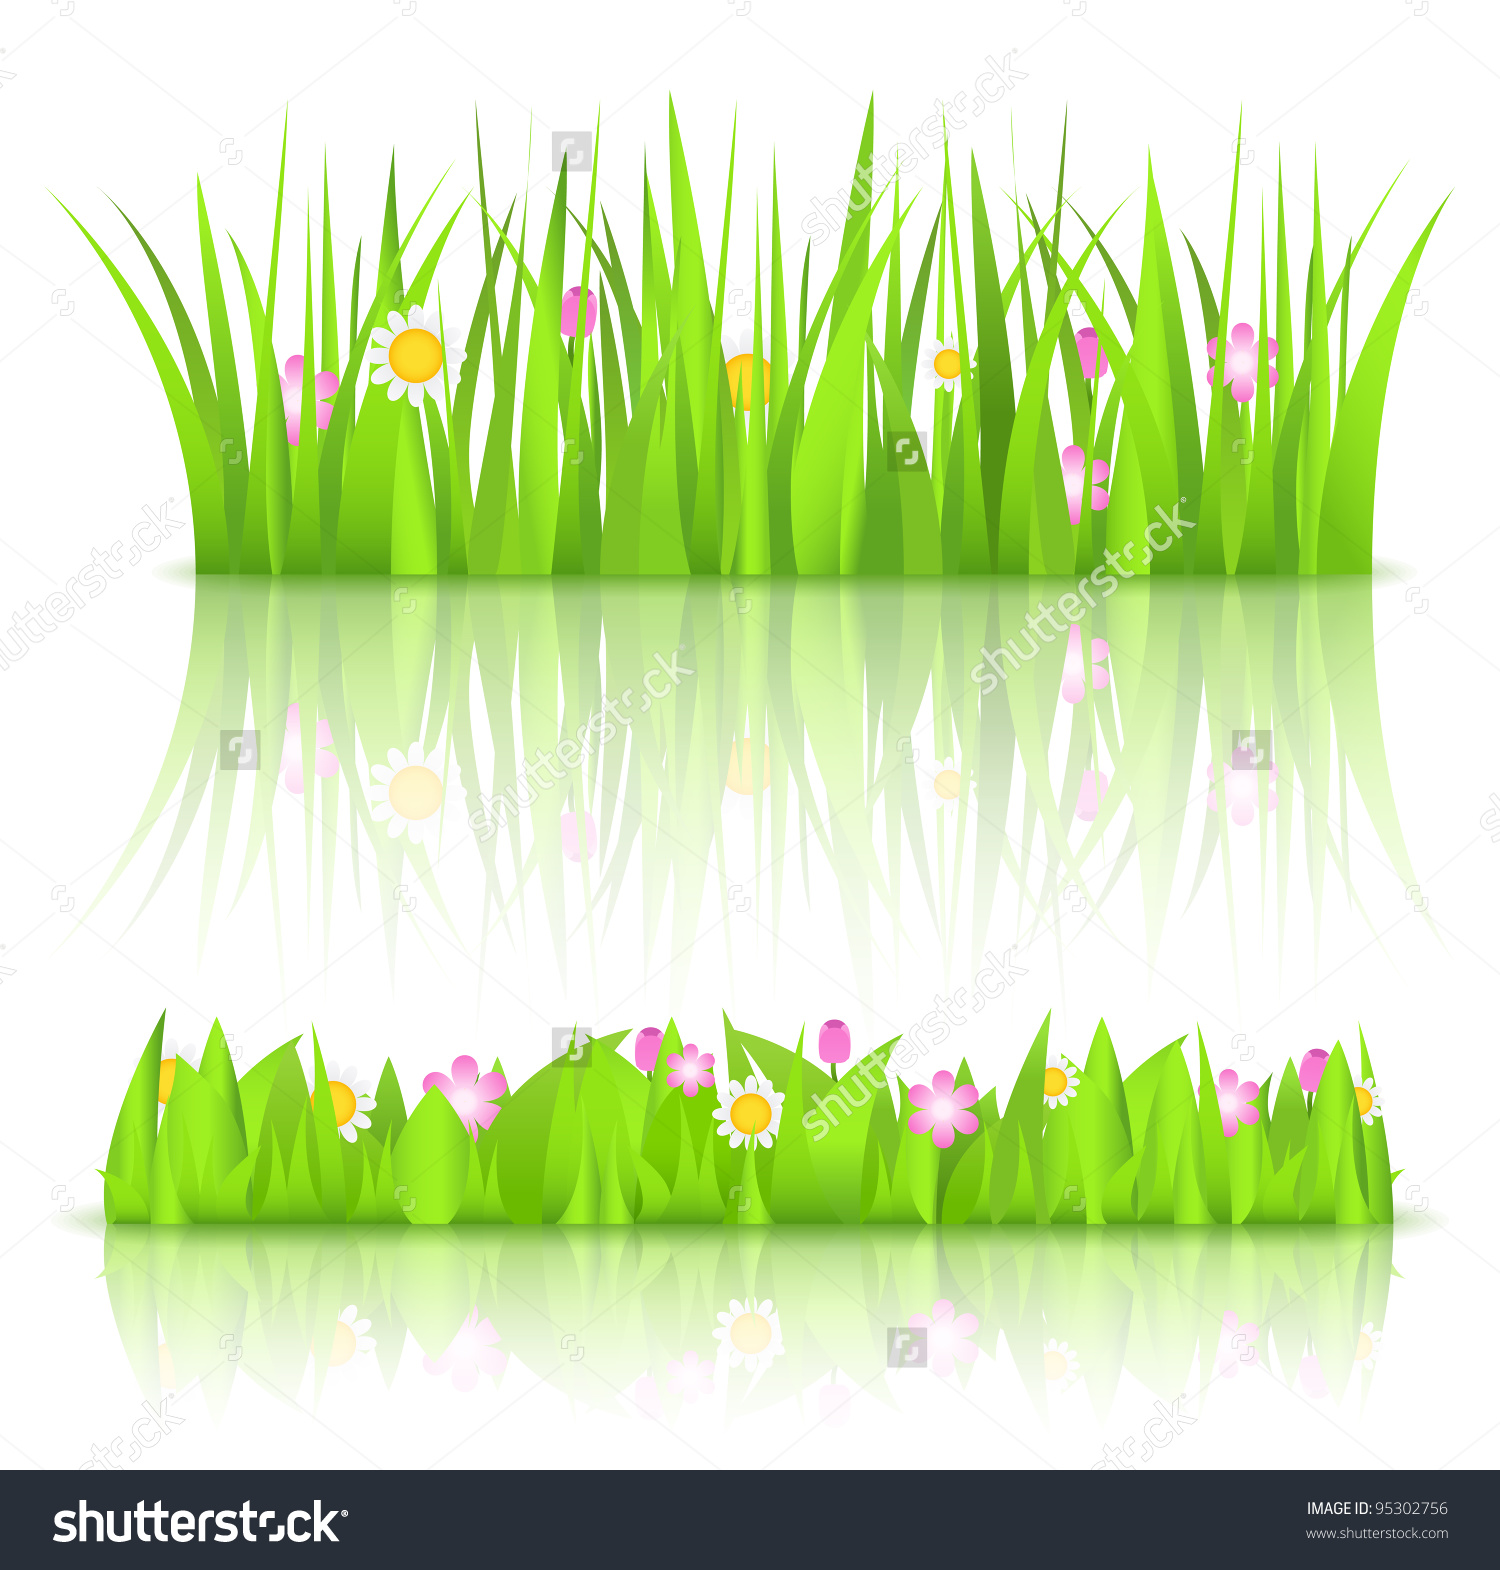 Green Grass With Flowers, Vector Eps10 Illustration.